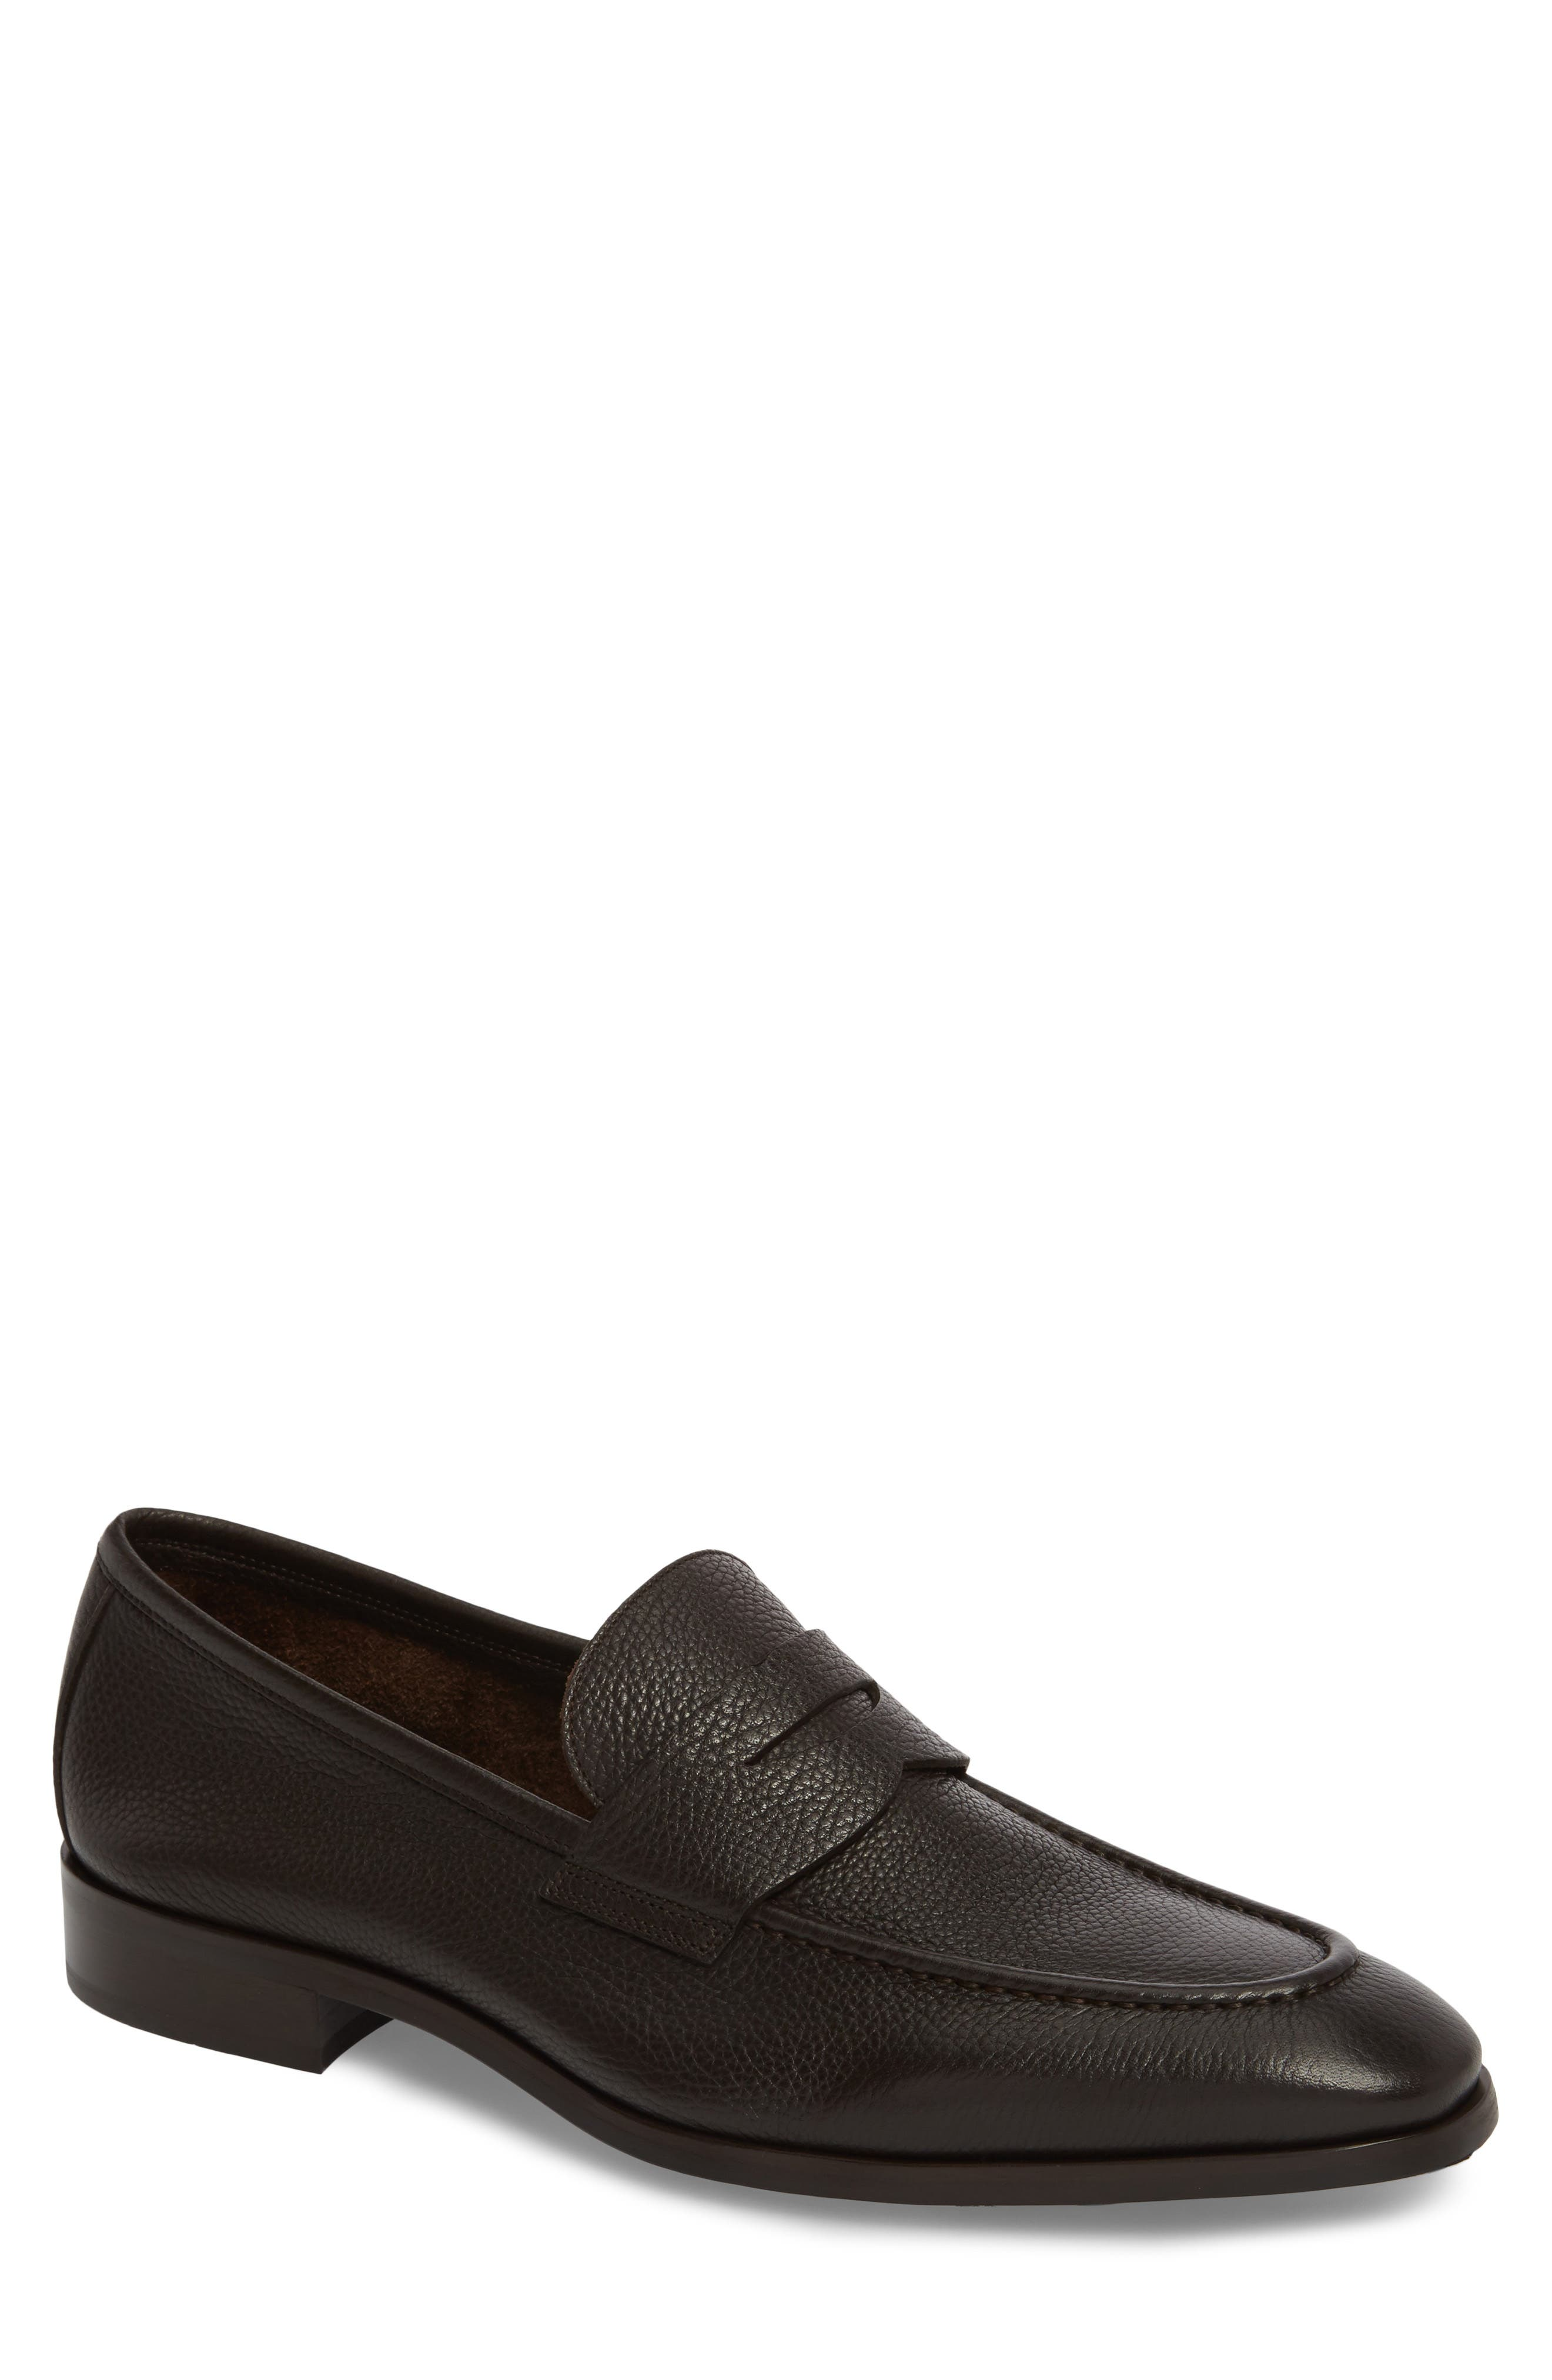 To Boot New York Johnson Penny Loafer, Brown